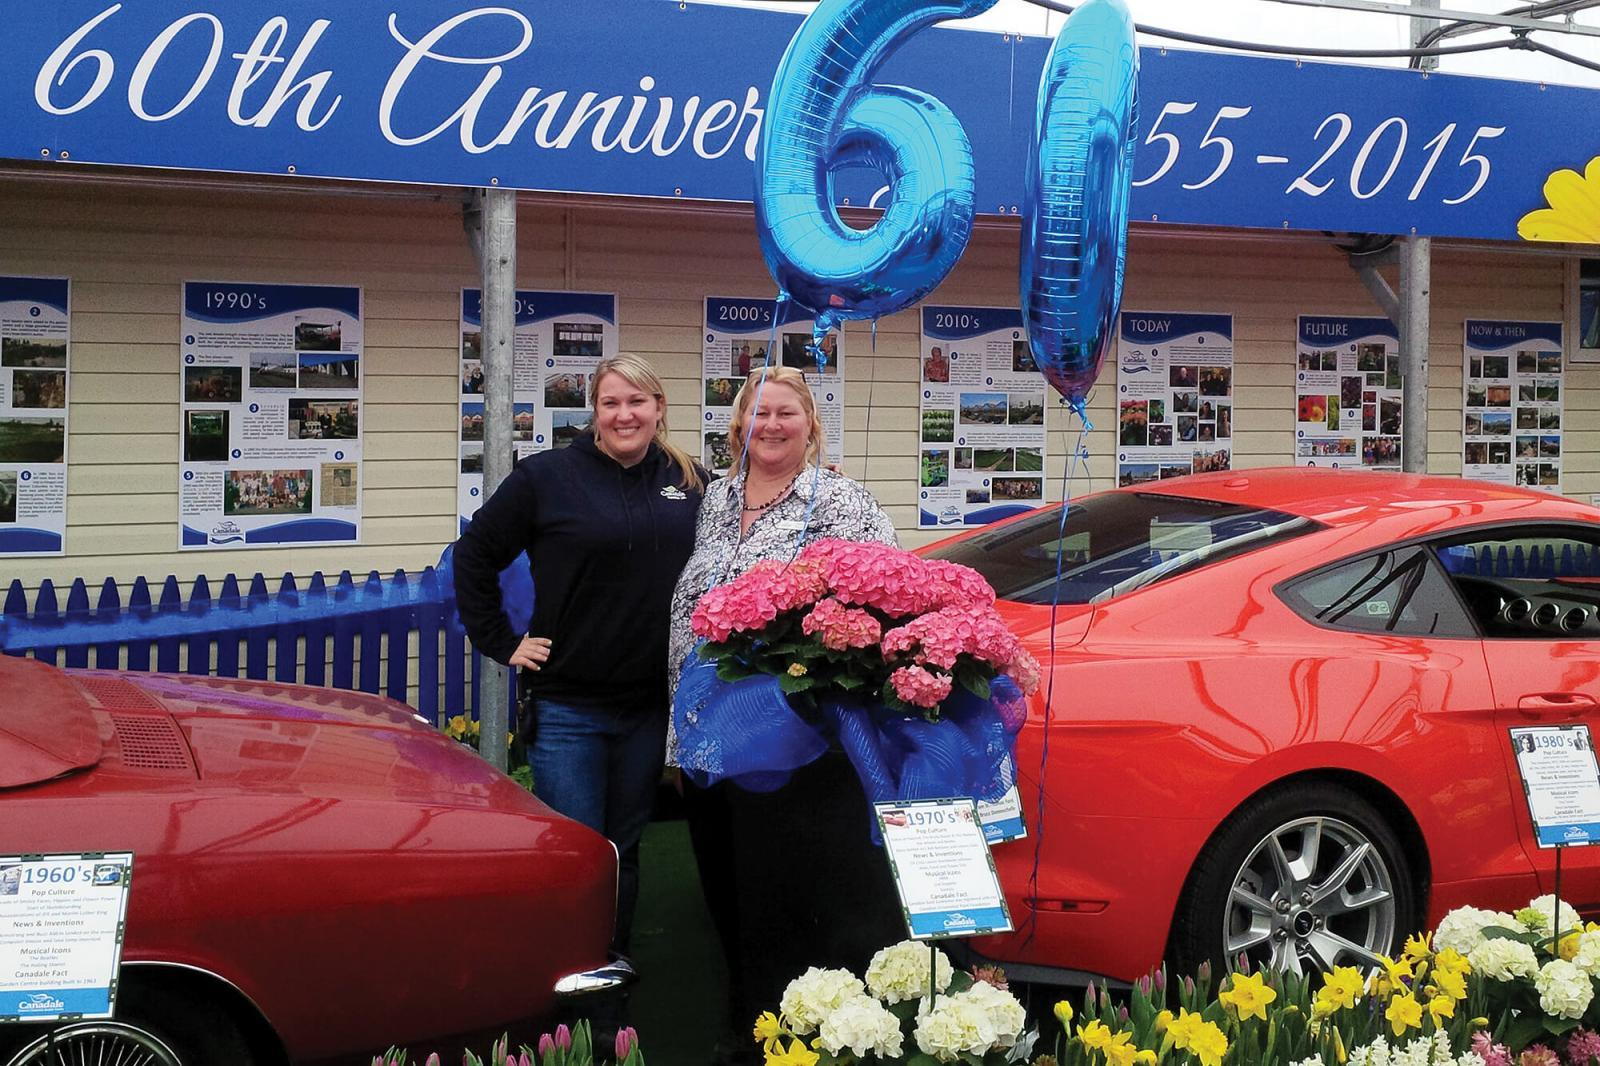 Canadale celebrates 60 years